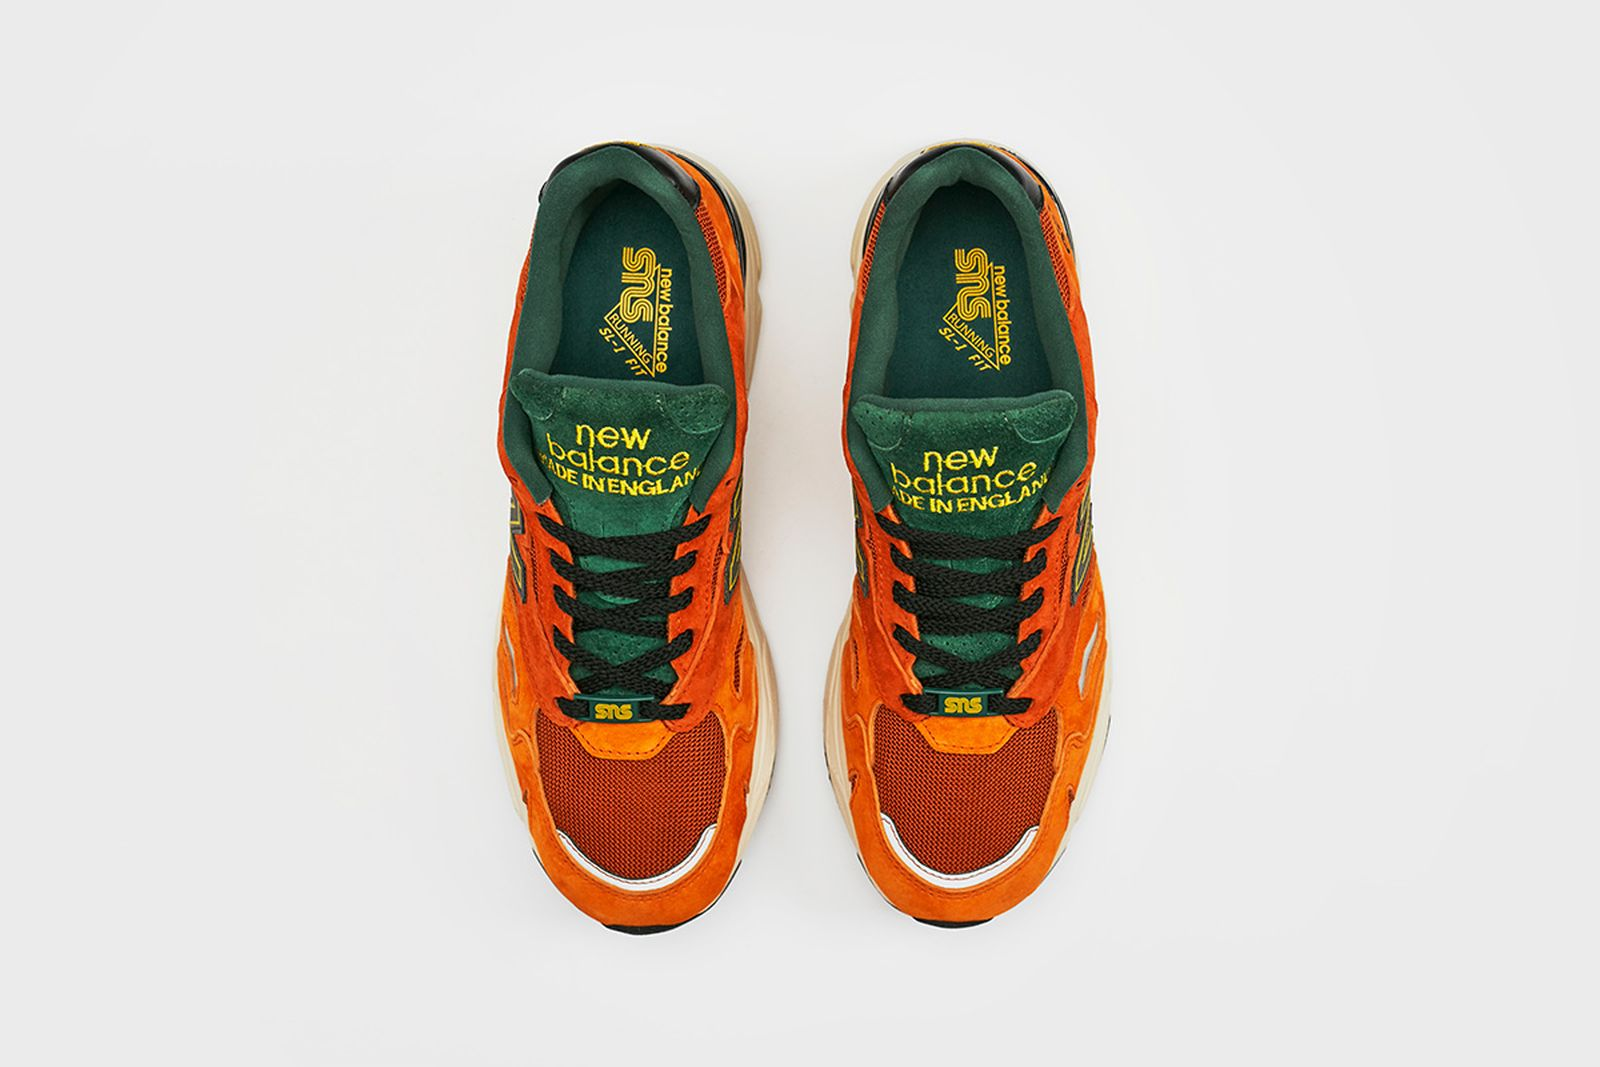 sns-new-balance-920-release-date-price-01